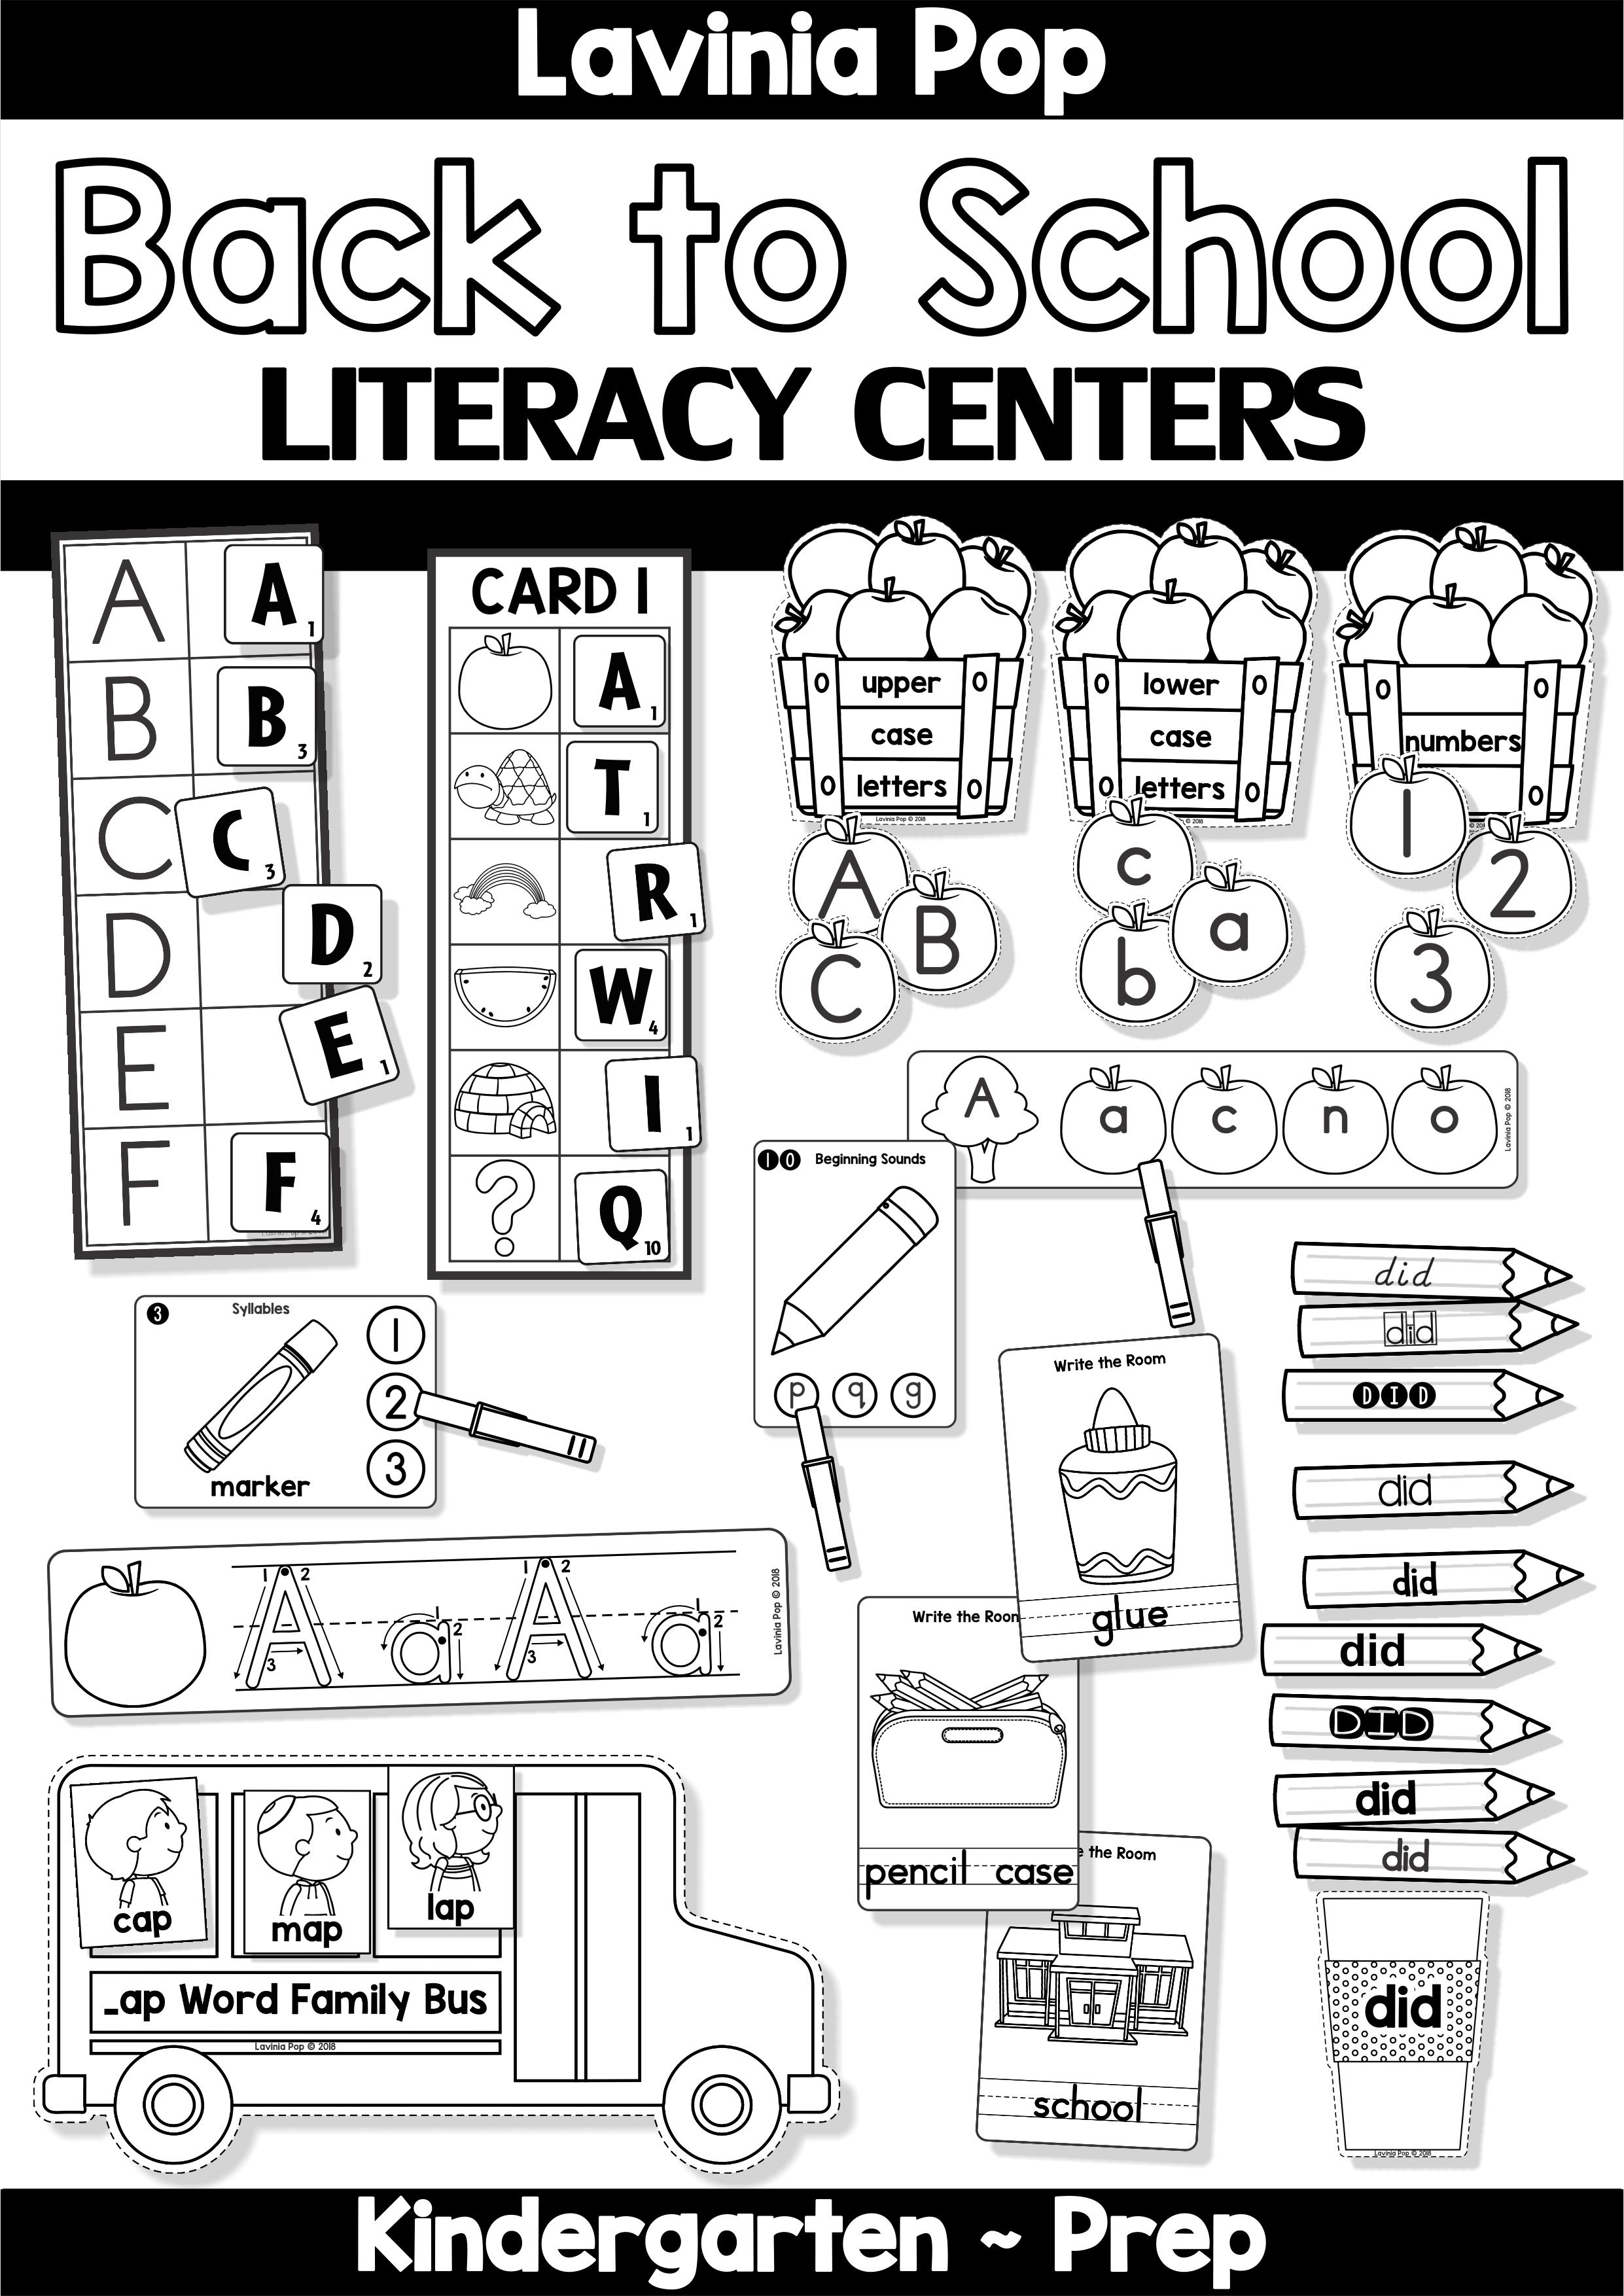 Back To School Literacy Centers For Kindergarten B Amp W